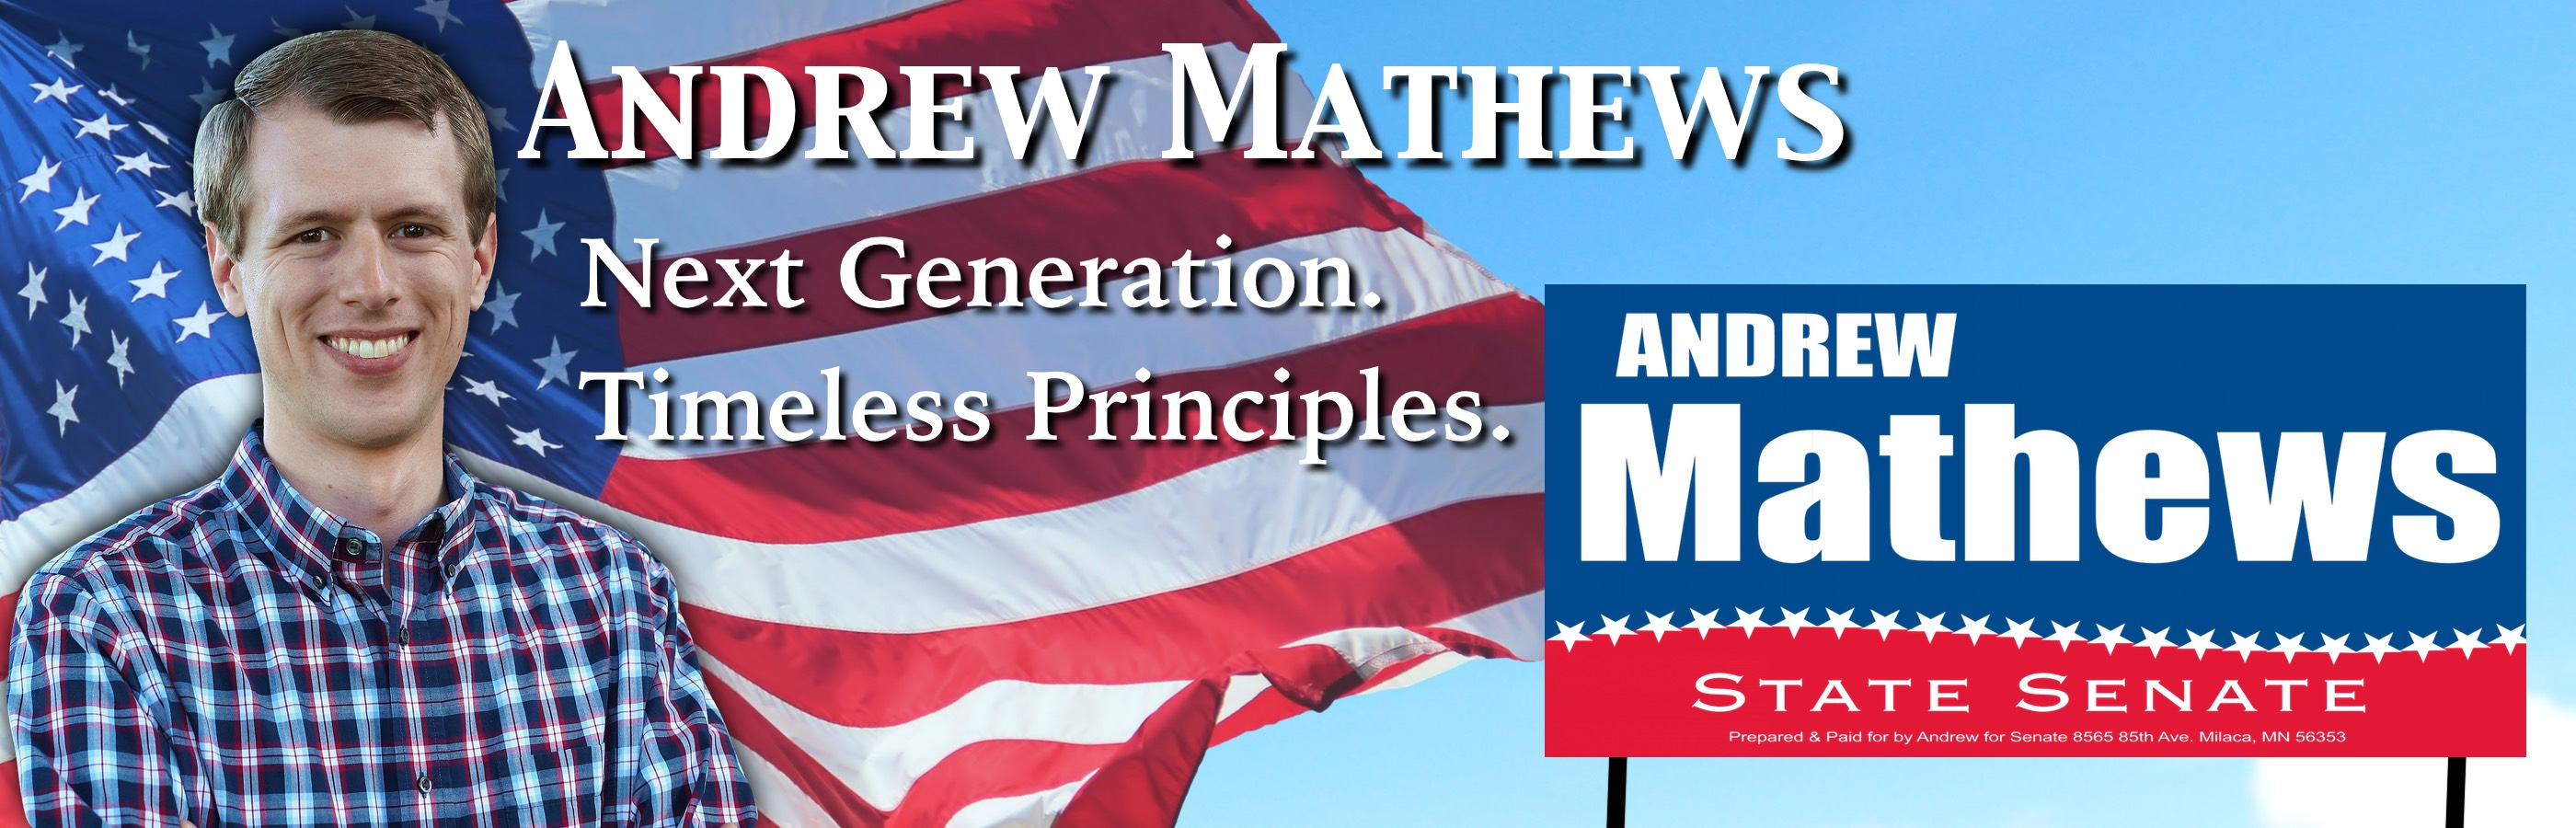 Andrew Mathews for State Senate